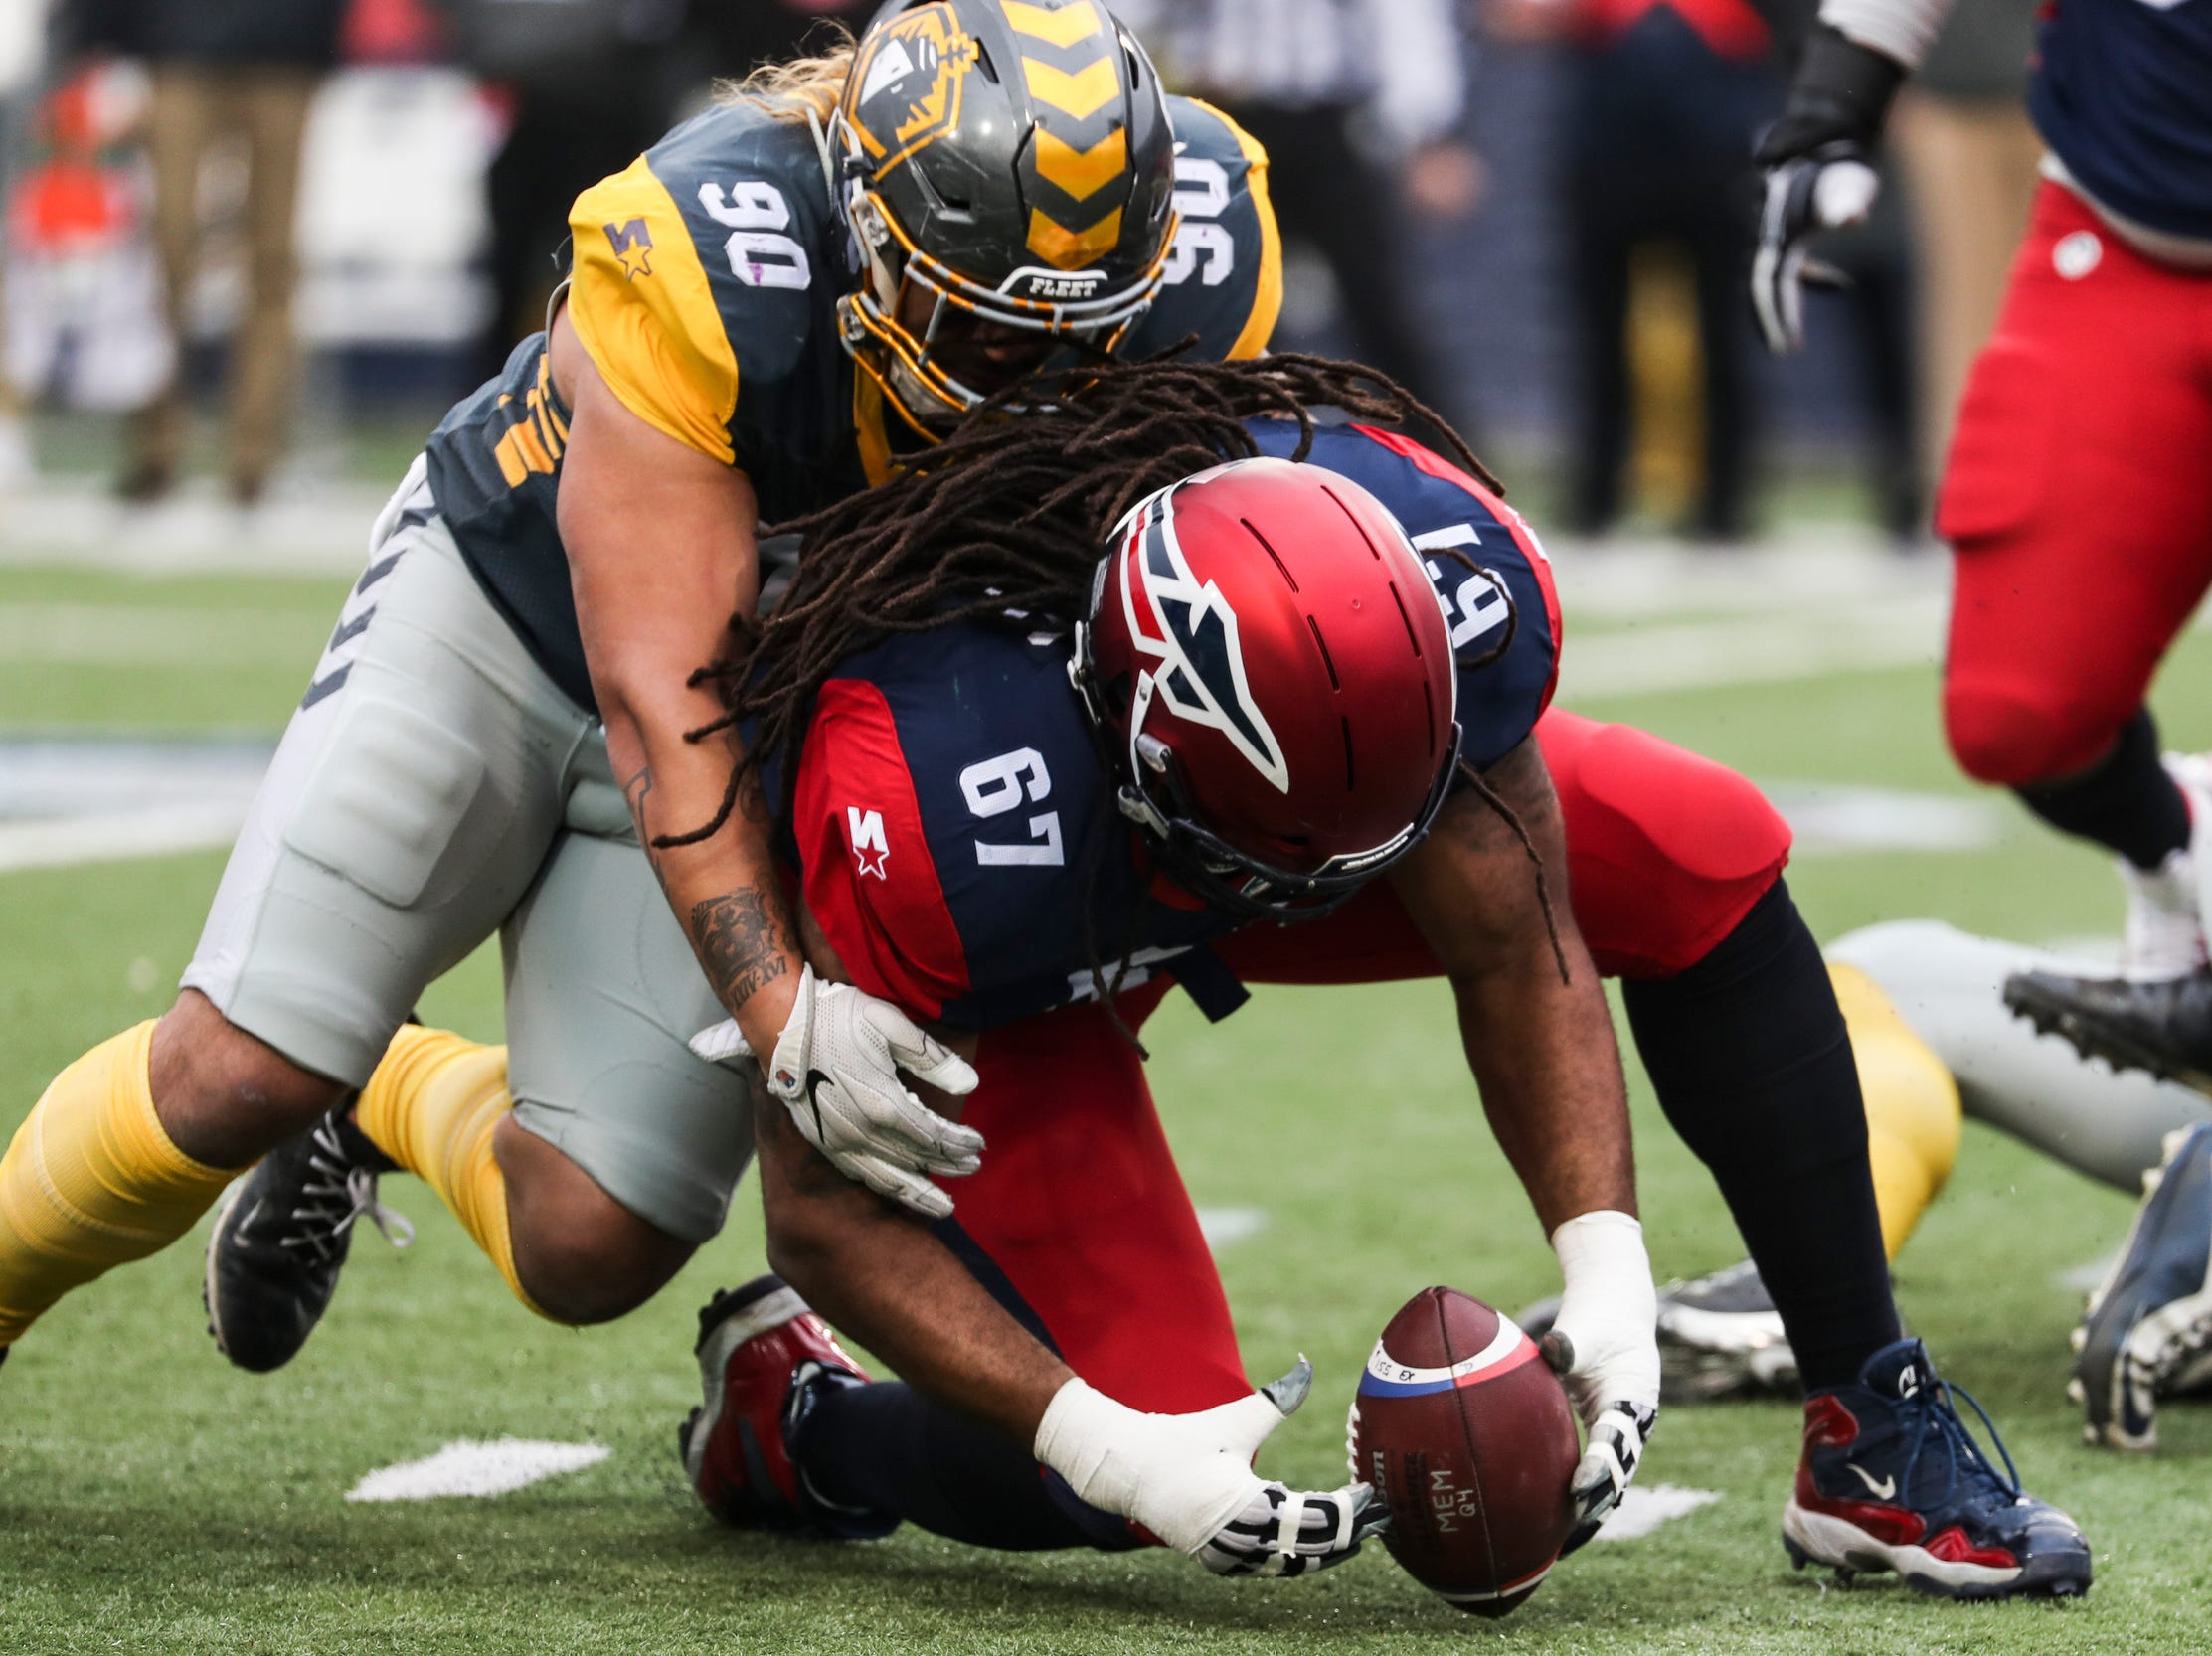 March 02, 2019 - Memphis Express' Dallas Thomas recovers a fumble during Saturday's game against the San Diego Fleet.